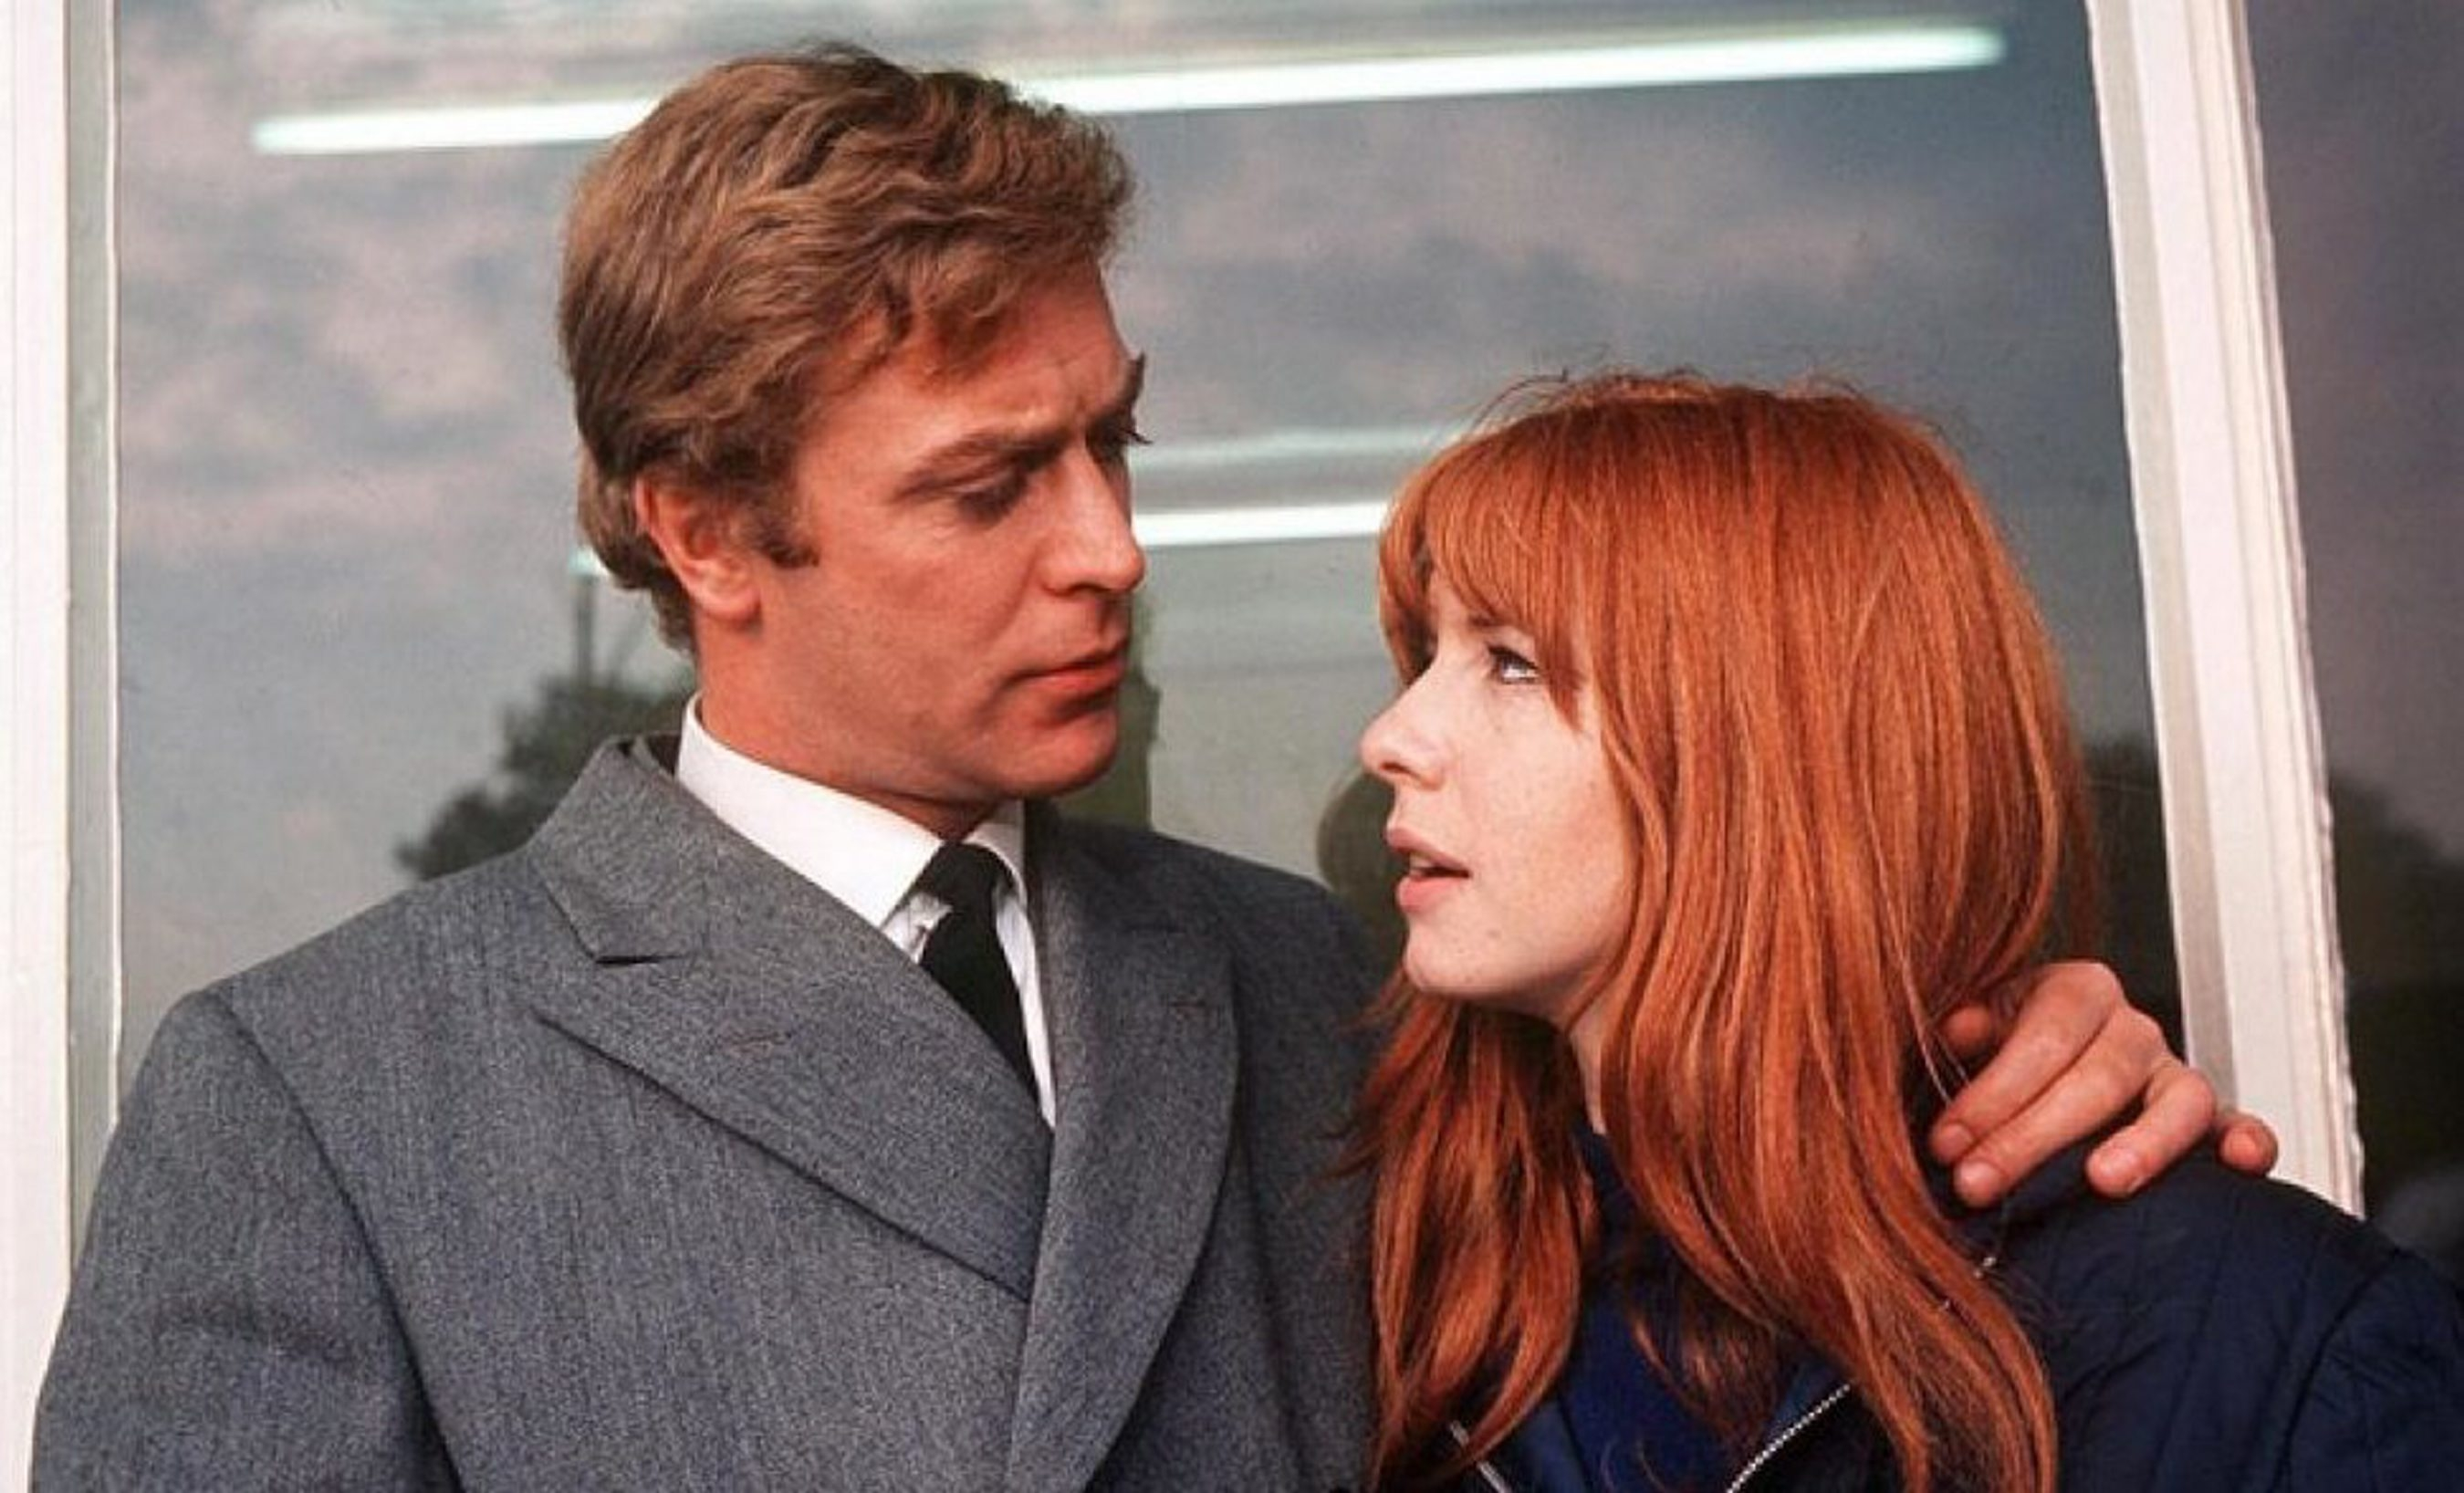 """Michael Caine and Jane Asher star in """"Alfie."""" """"Alfie"""" was one of several films released in the U.S. in 1966 that broke down movie censorship barriers and promoted female stars."""